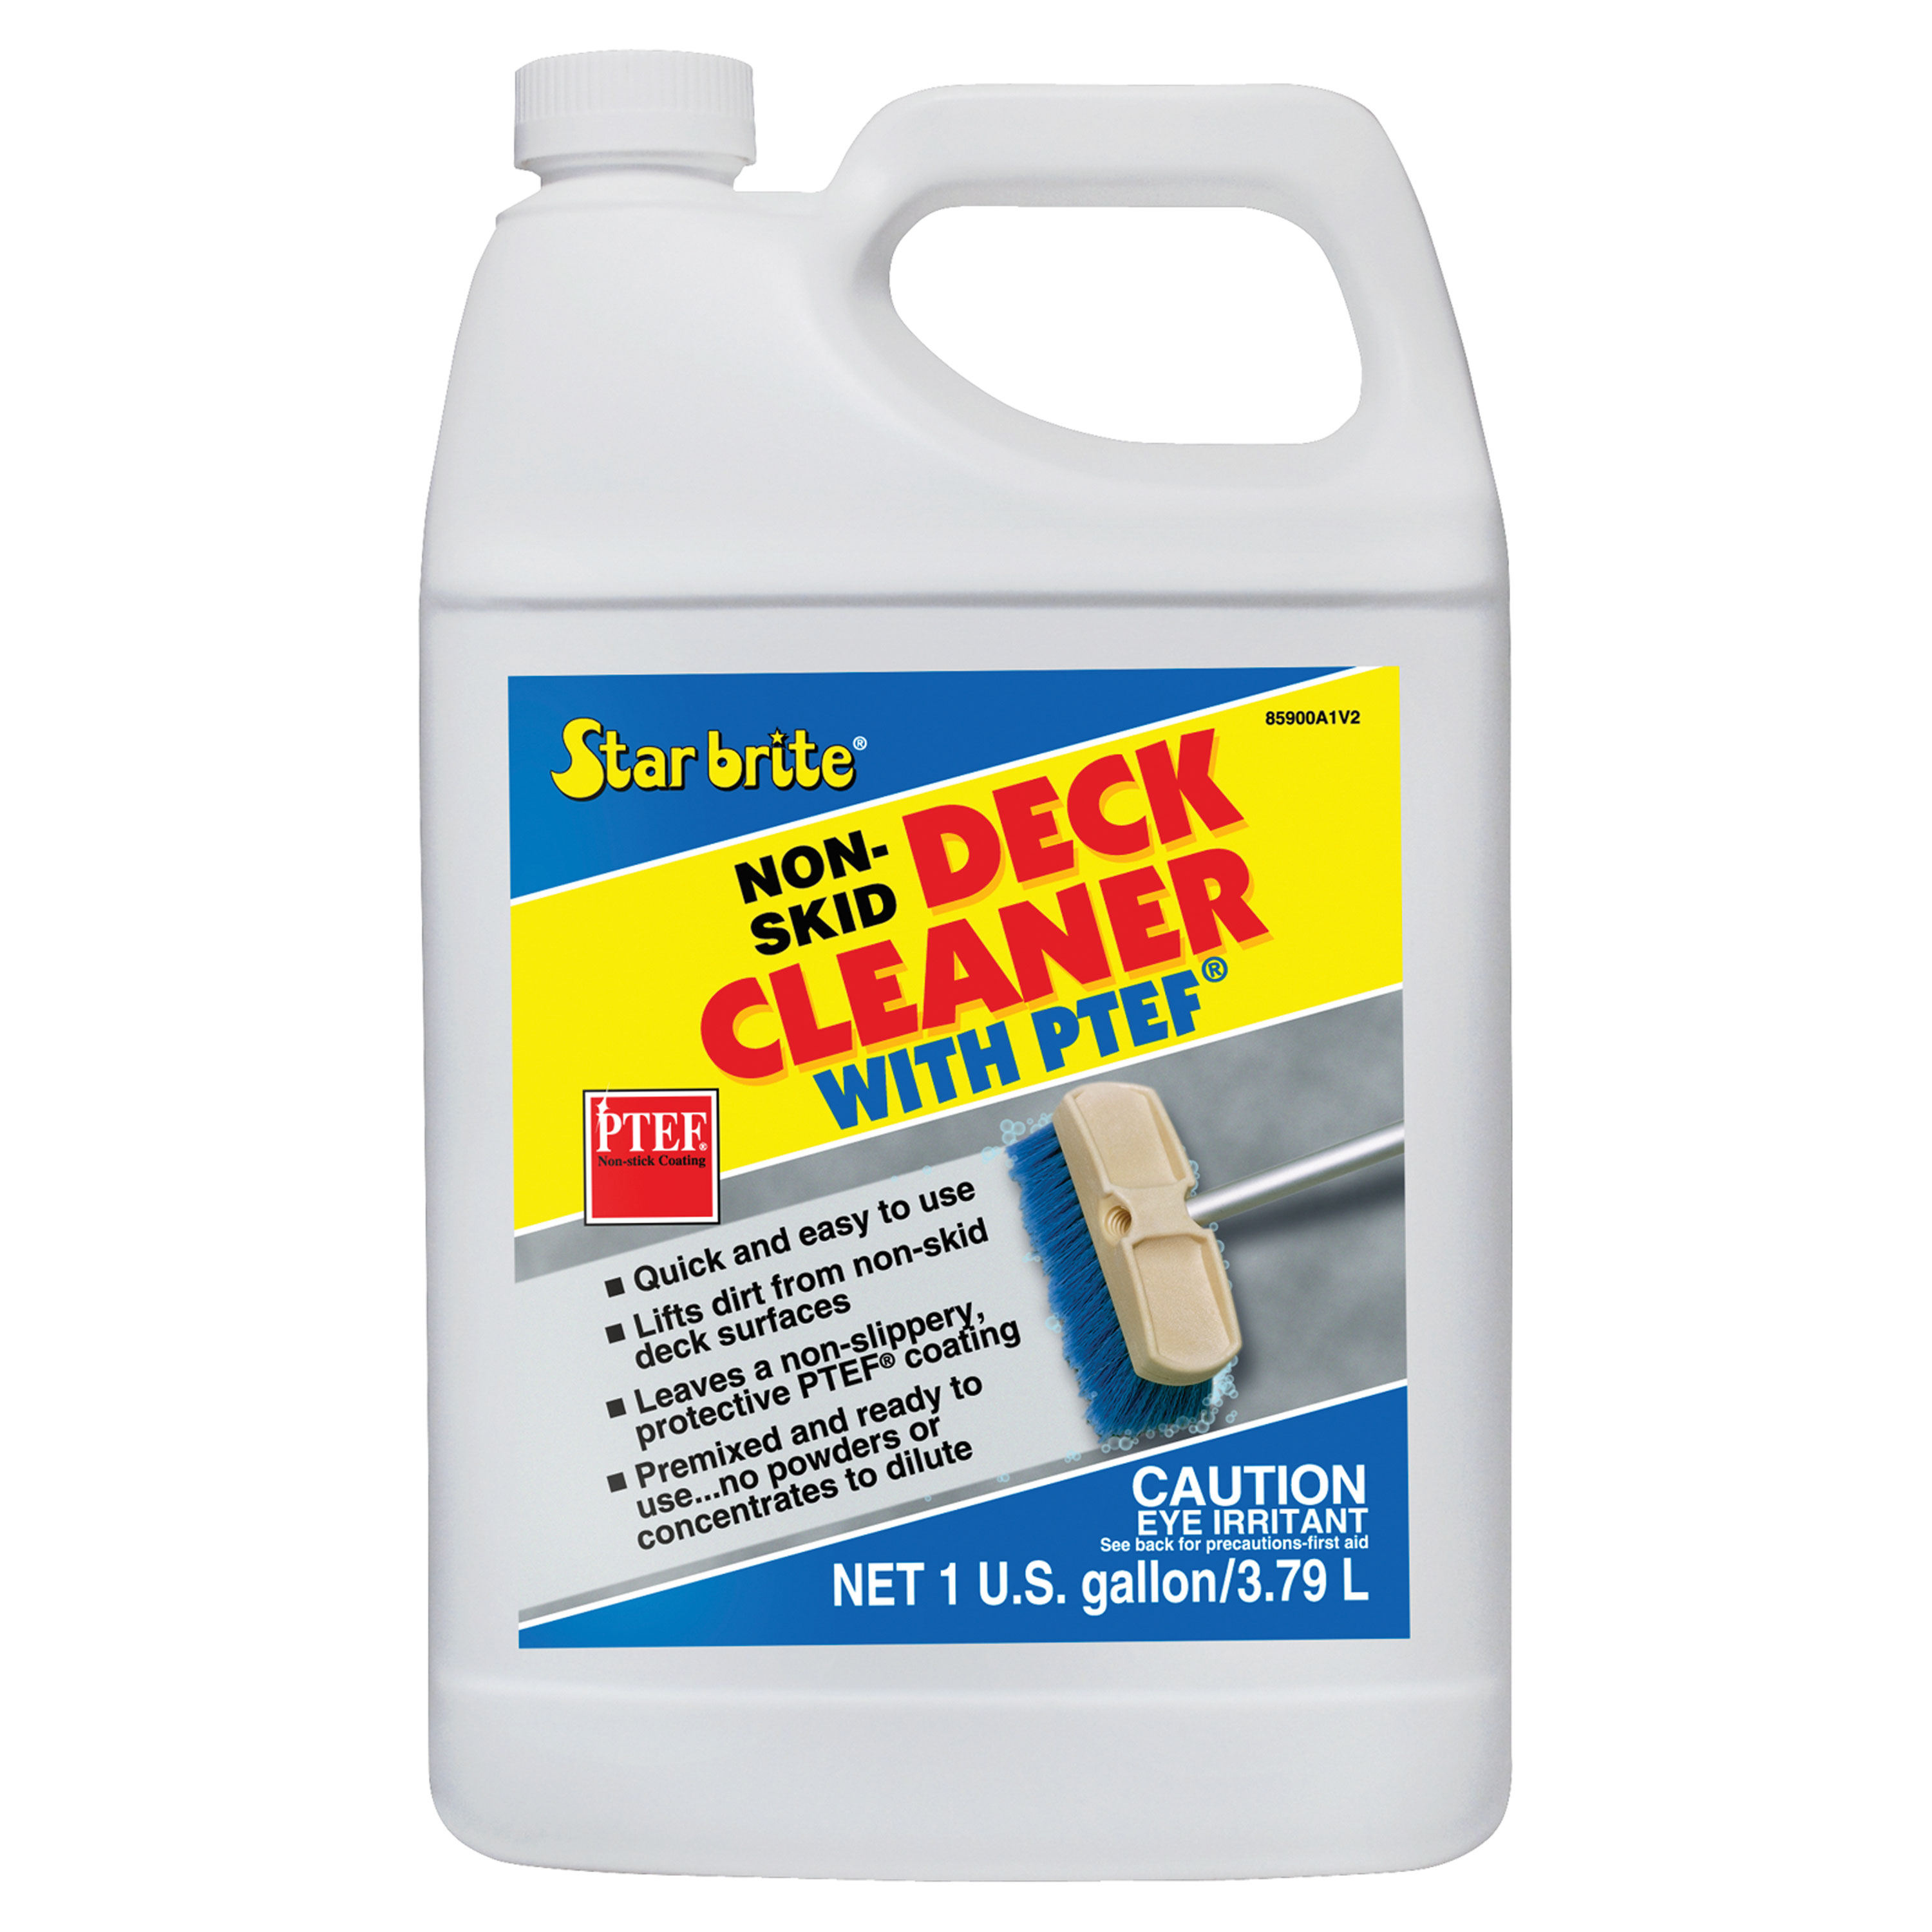 Star Brite 085900N Starbrite Non-Skid Deck Cleaner